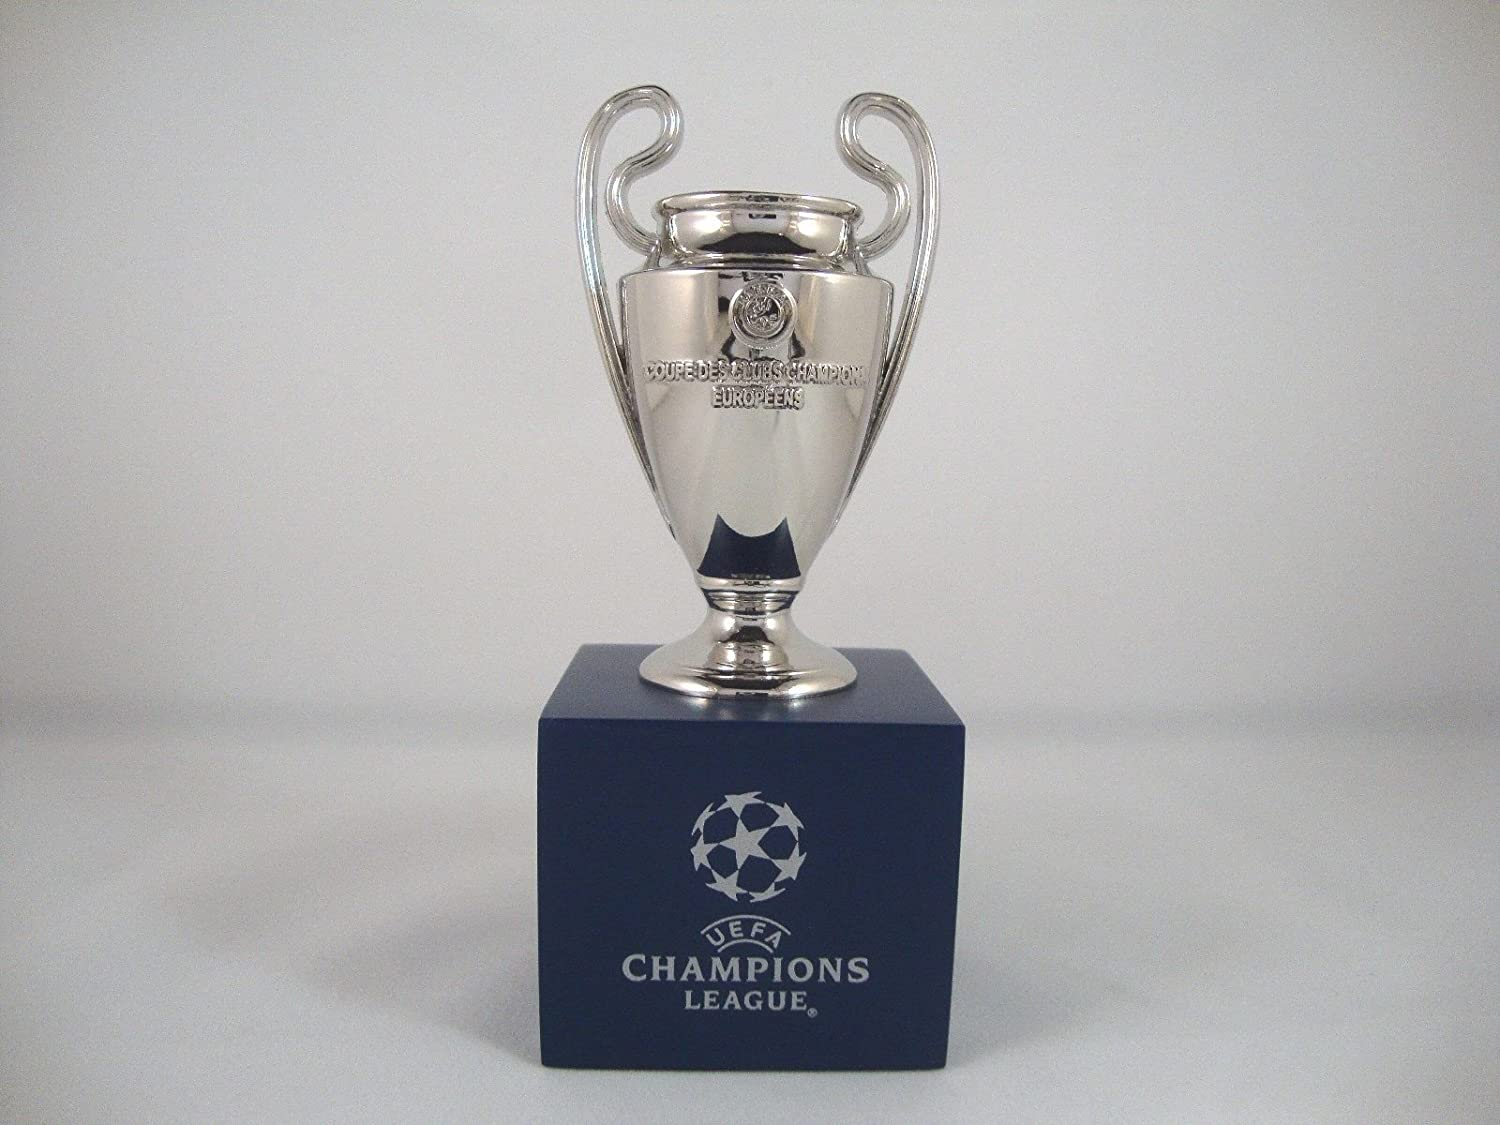 uefa champions league trophy 70mm footed cup amazon co uk sports outdoors uefa champions league trophy 70mm footed cup